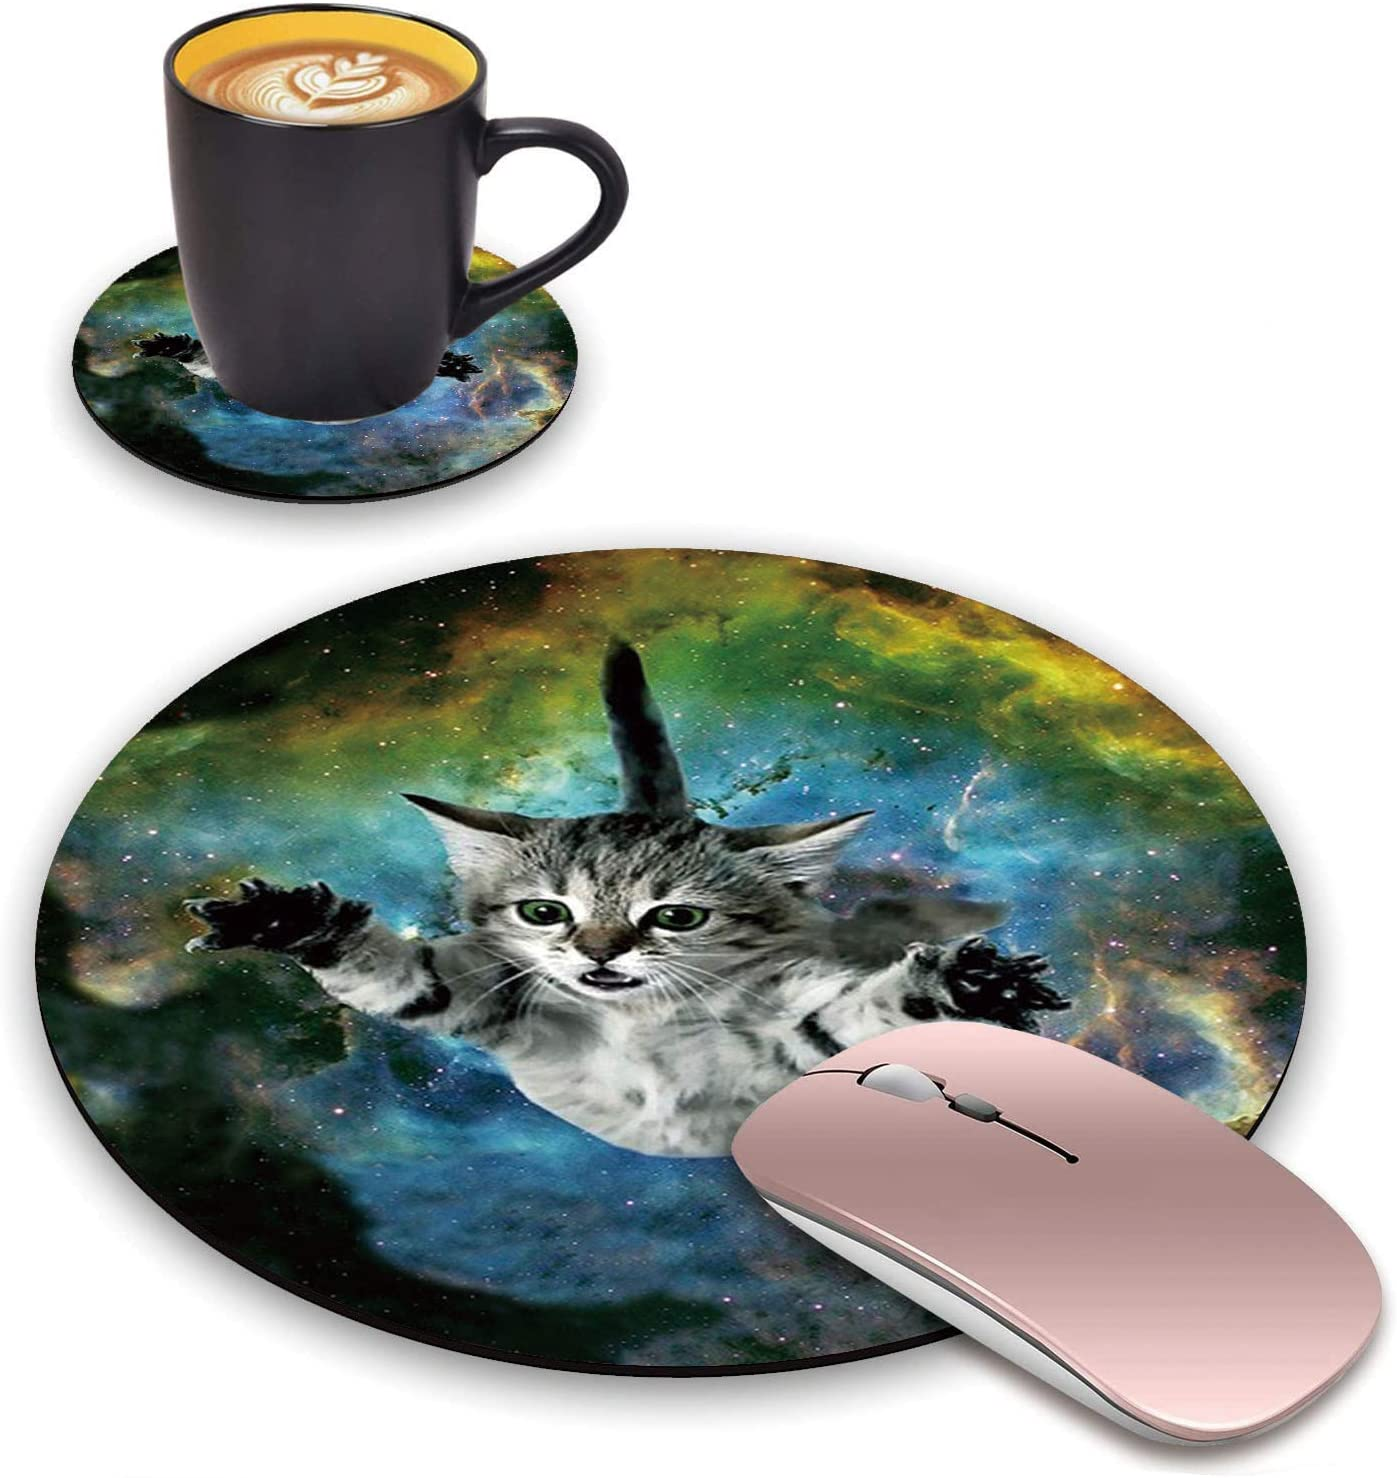 BWOOLL Round Mouse Pad and Coasters Set, Galaxy Nebula Space Cat Design Mouse Pad, Non-Slip Rubber Base Mouse Pads for Laptop and Computer